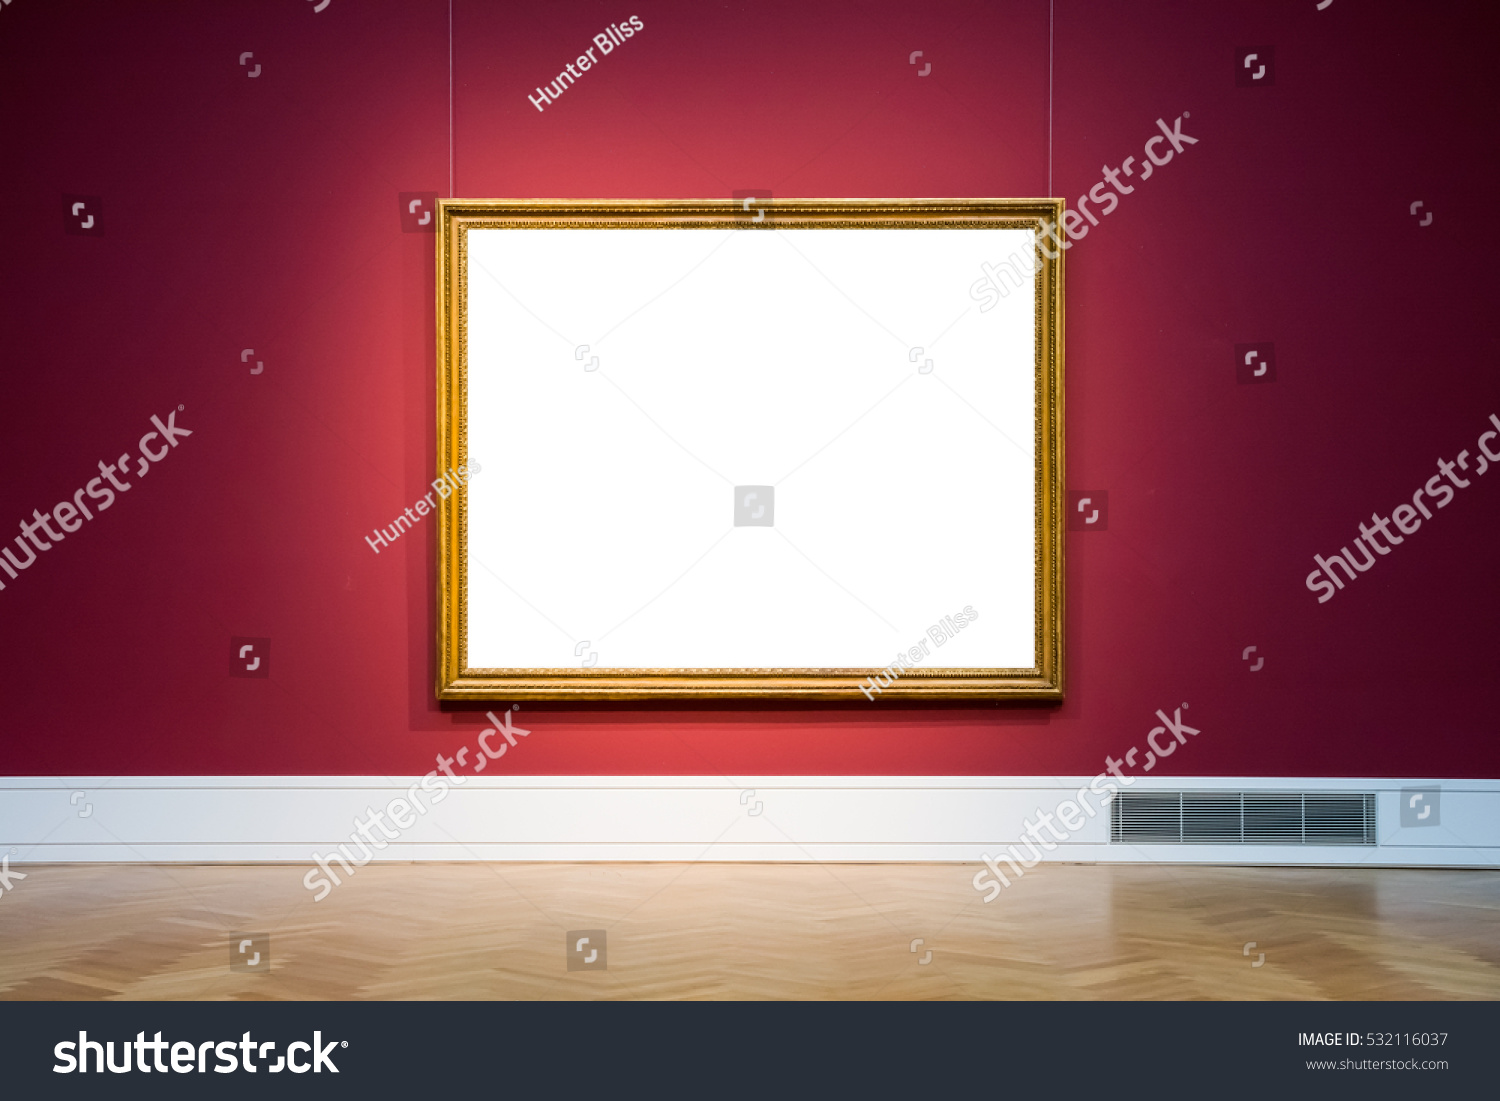 Art Museum Frame Wall Ornate Minimal Design White Isolated Clipping Path Template #532116037